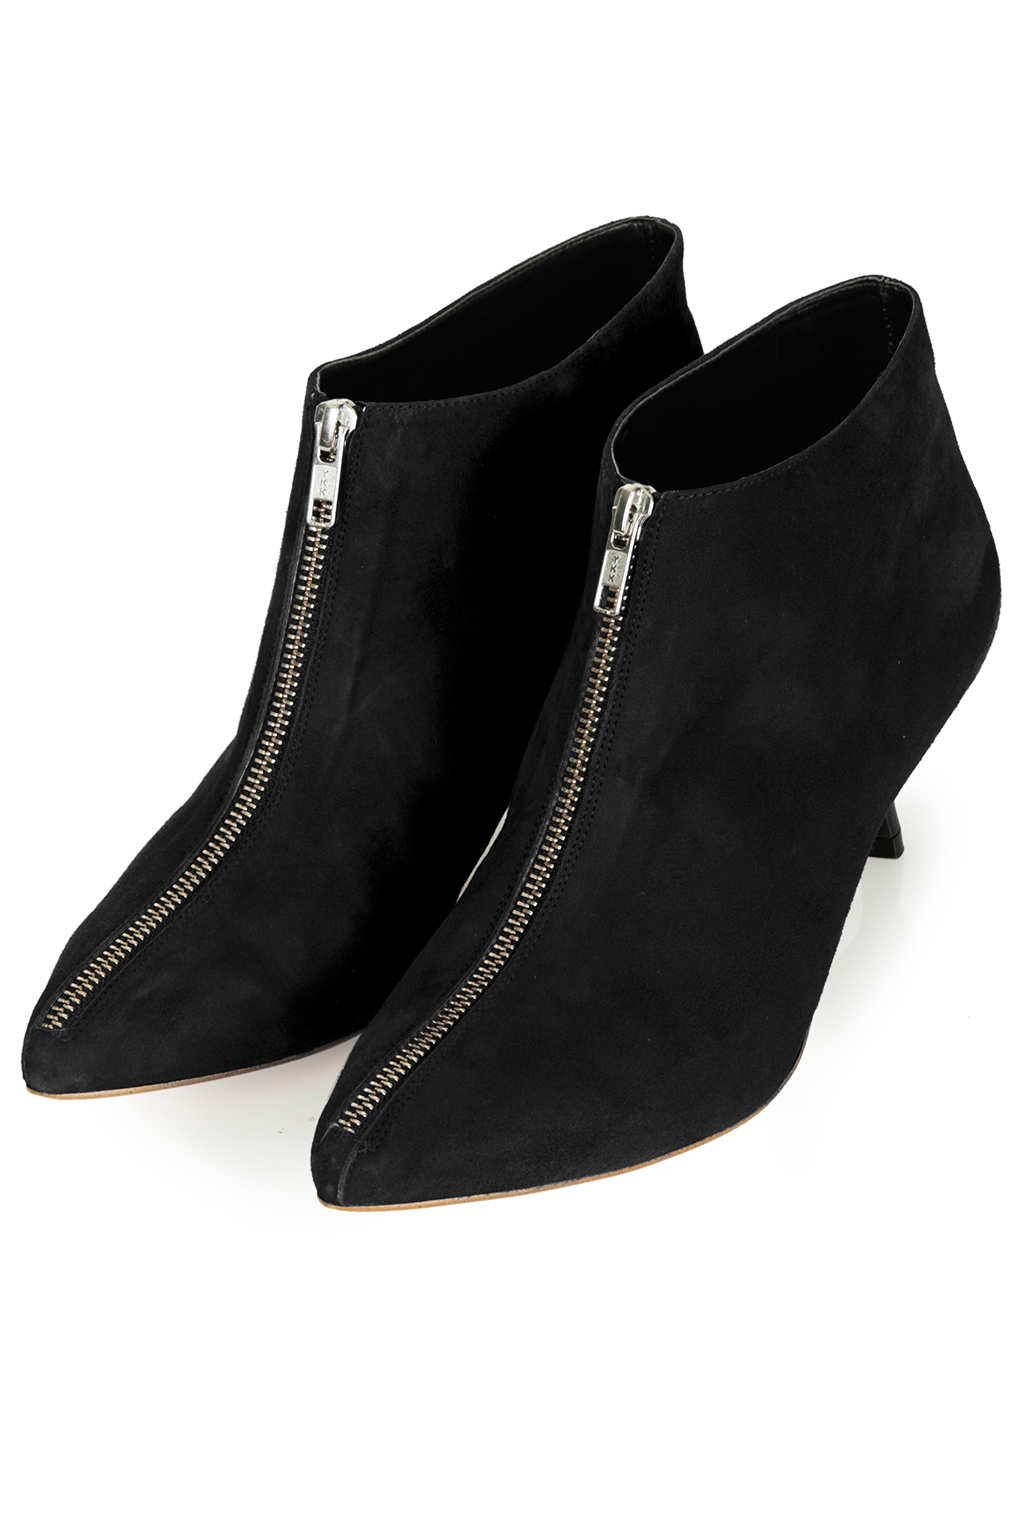 Topshop Applebee Kitten Heel Boots in Black | Lyst